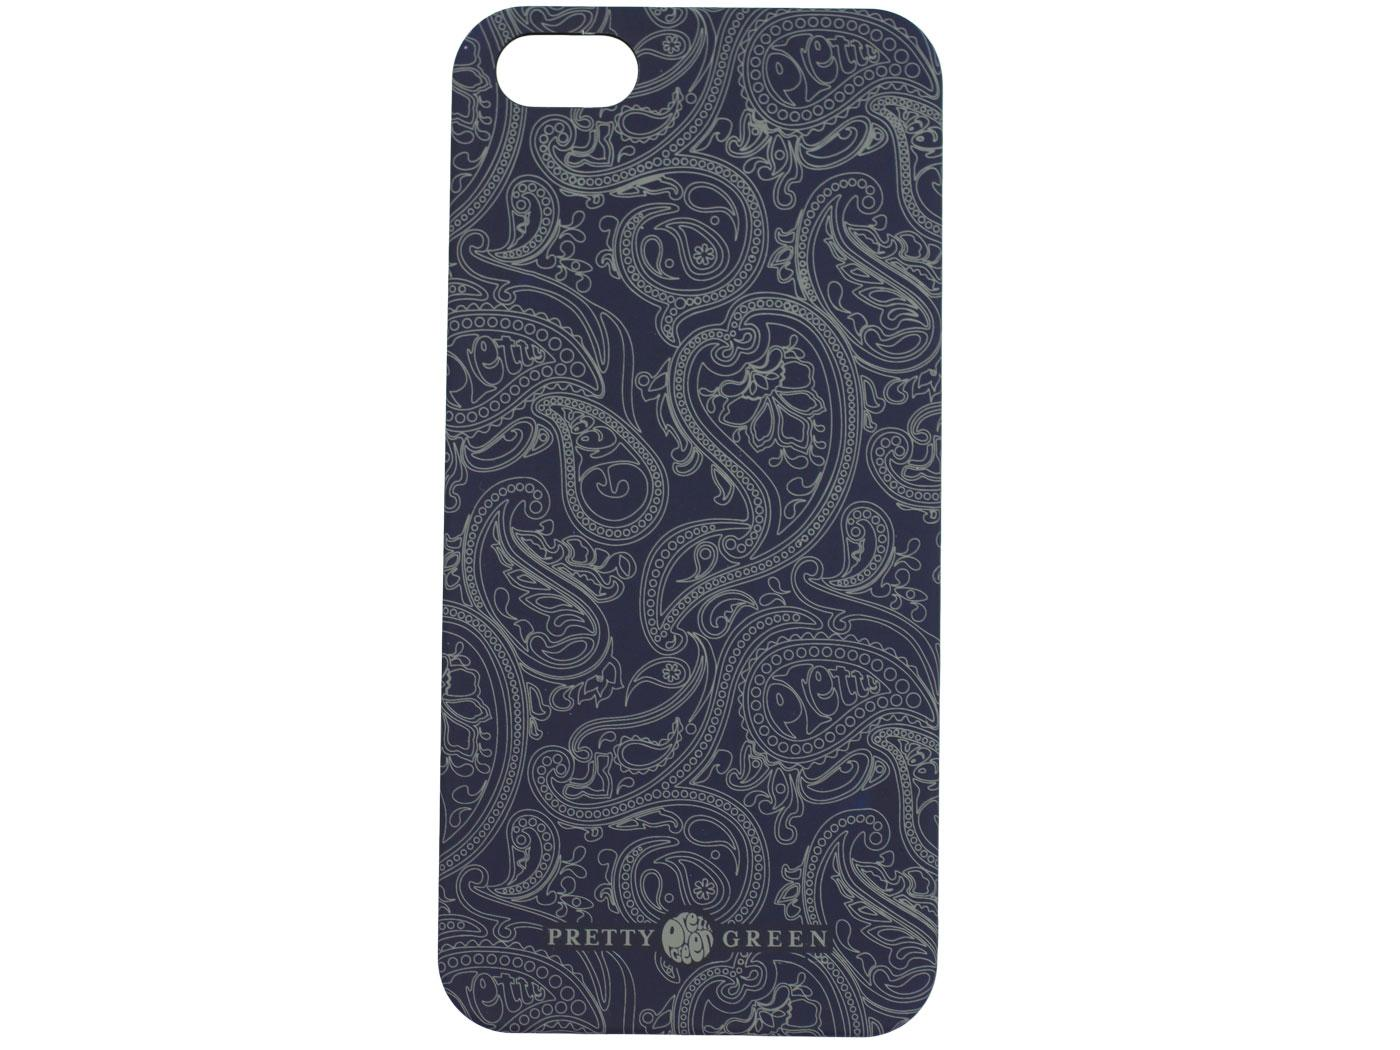 PRETTY GREEN Retro 60s Mod Paisley iPhone 5 Case in Navy